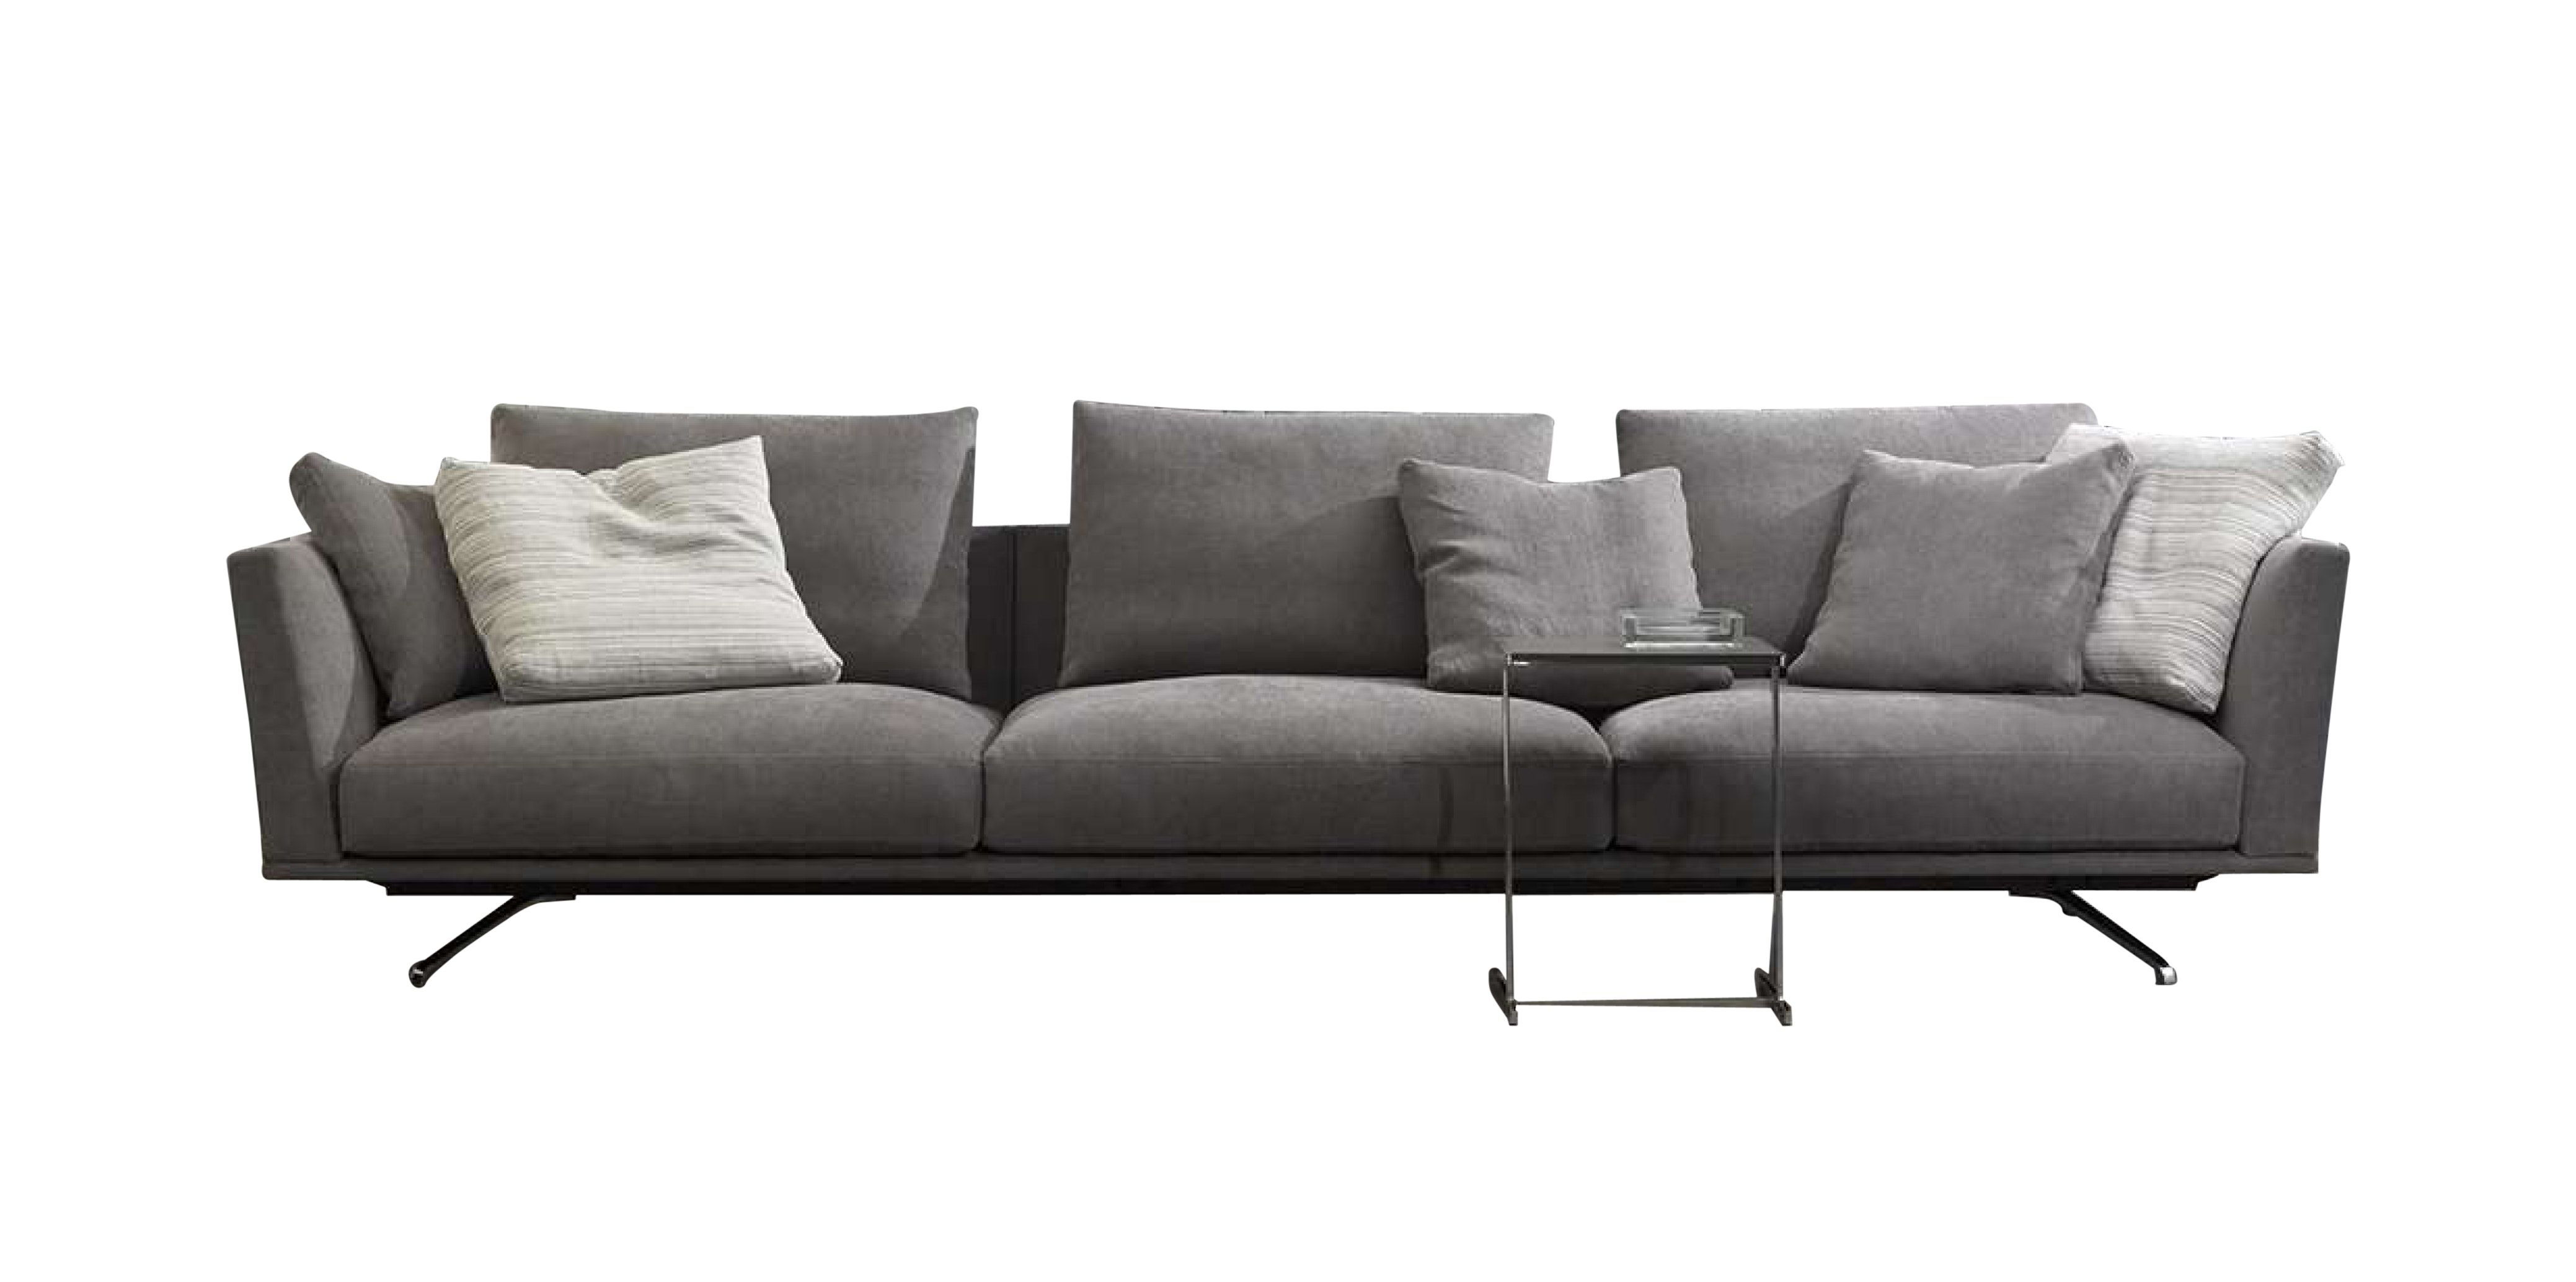 Captivating Buy Shelby Sofa By Collective Form   Made To Order Designer Furniture From  Dering